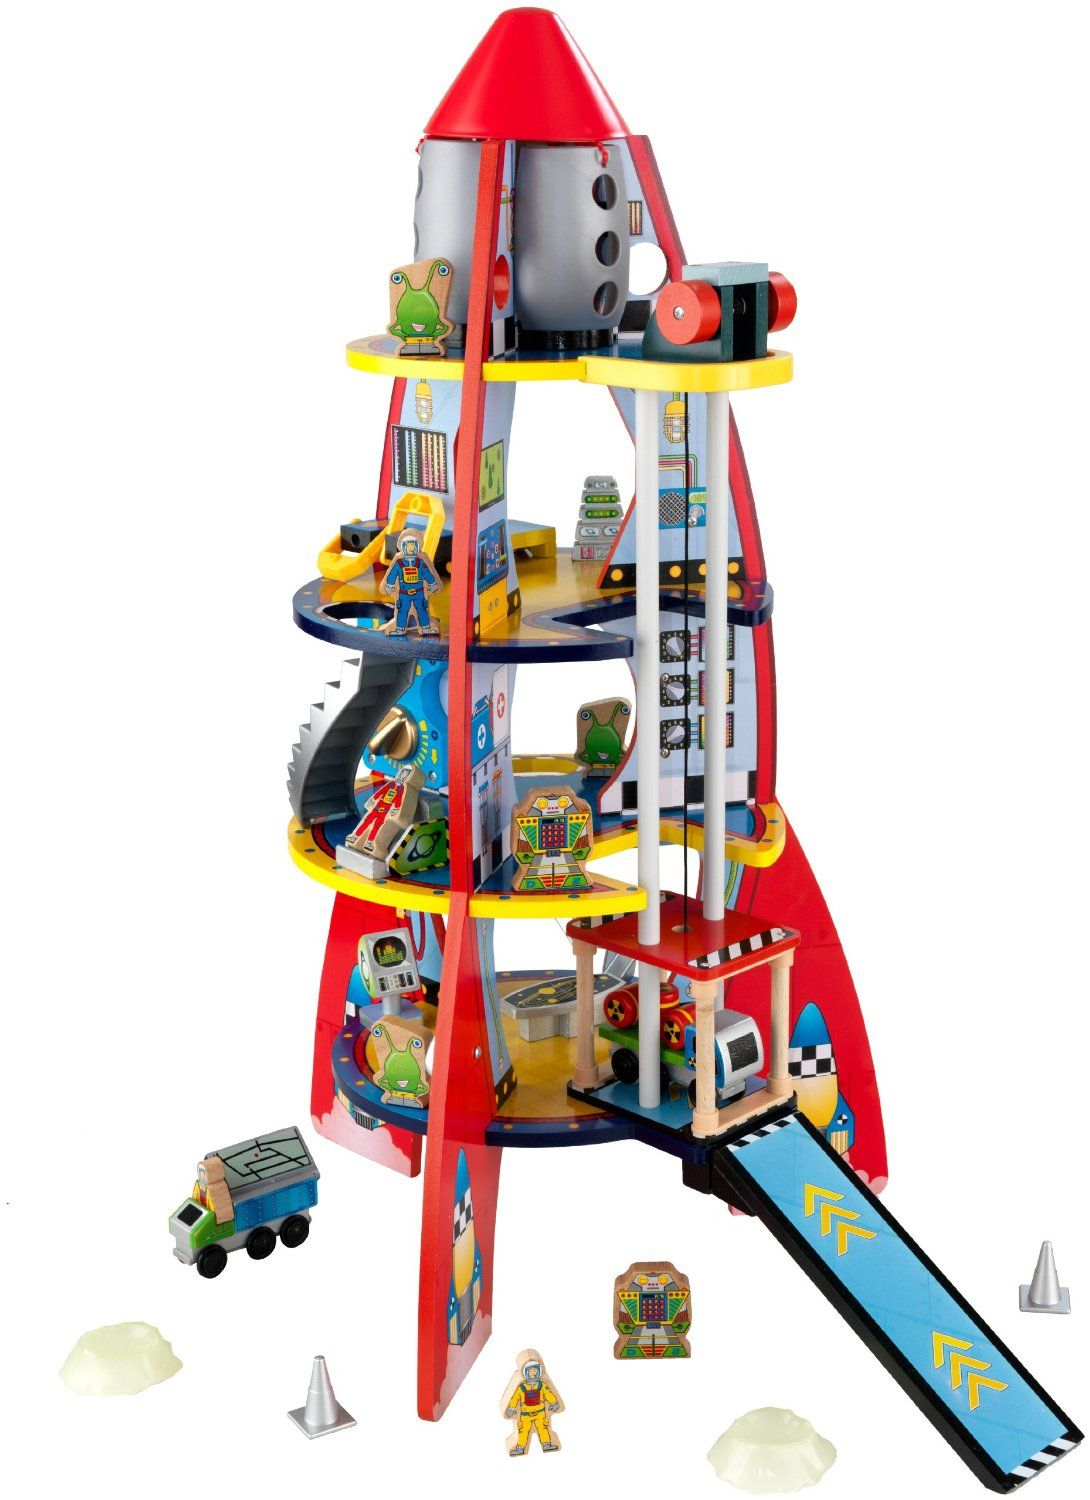 Fun Explorers Rocket Ship Wooden Toys For Toddlers Cool